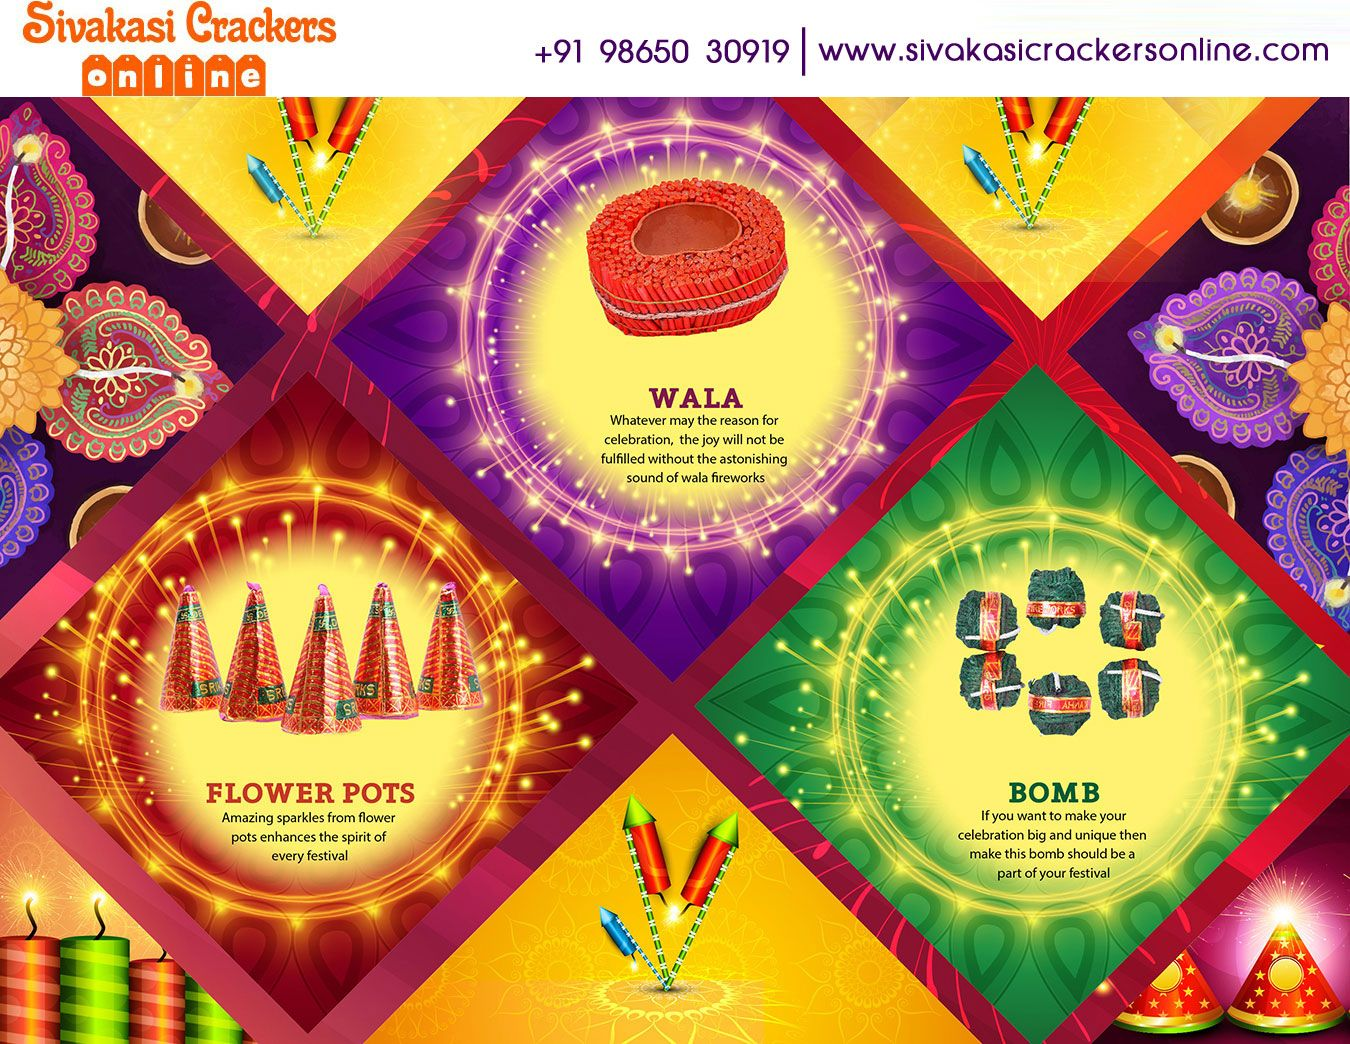 Sivakasi Crackers Online portal is the only place where